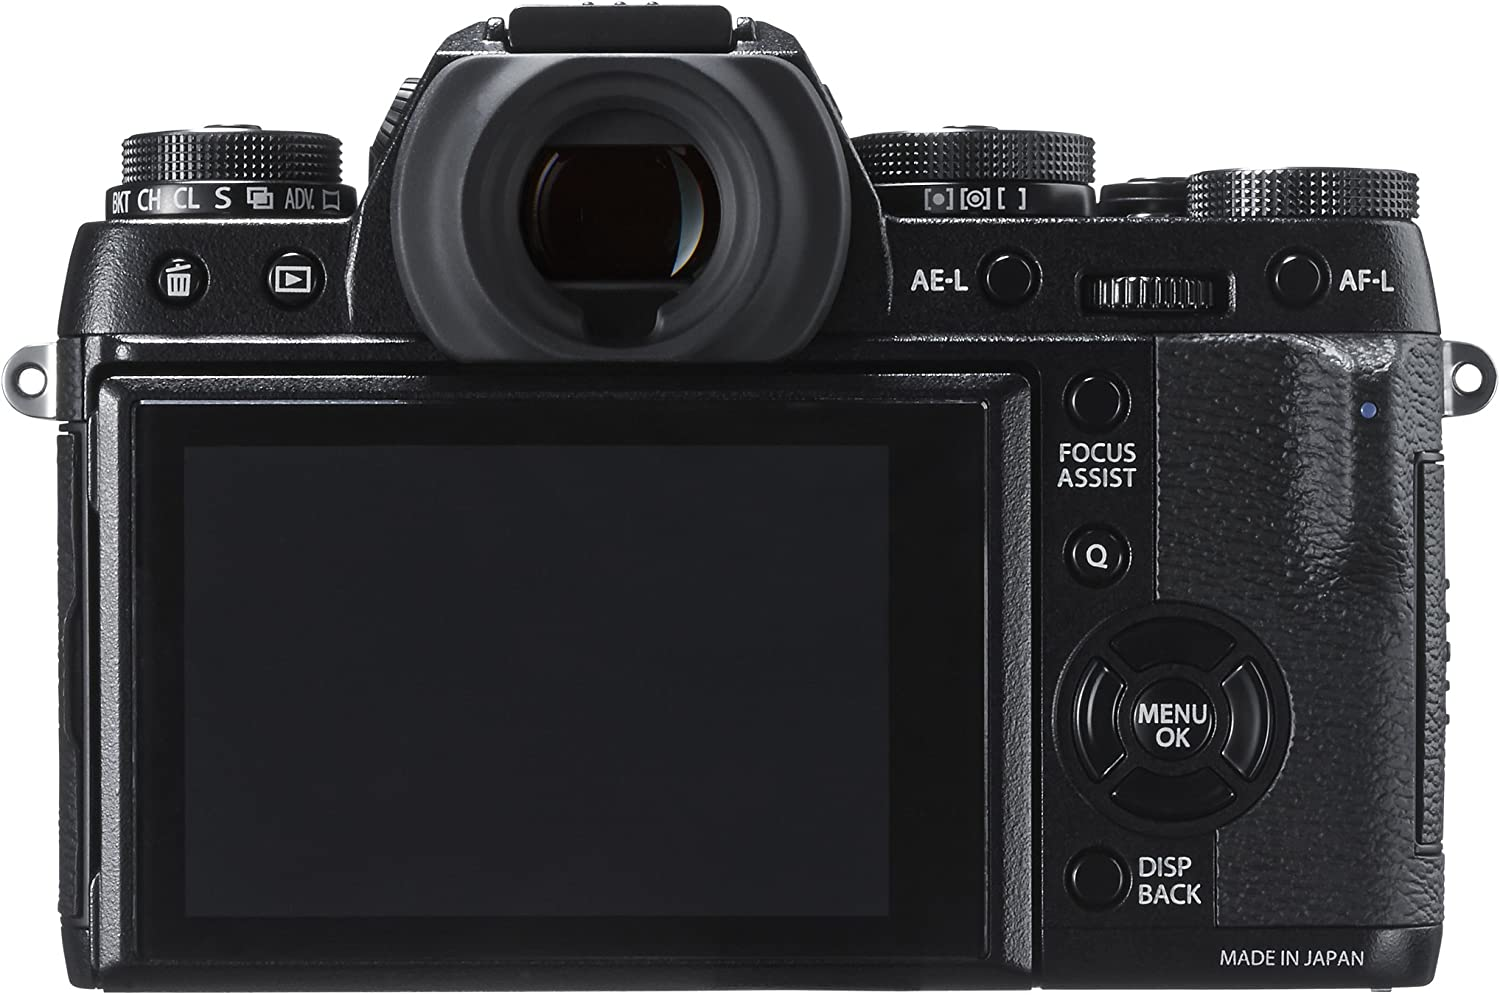 Fujifilm X-T1 16 MP Mirrorless Digital Camera with 3.0-Inch LCD (Body Only) (Weather Resistant) (Old Model)